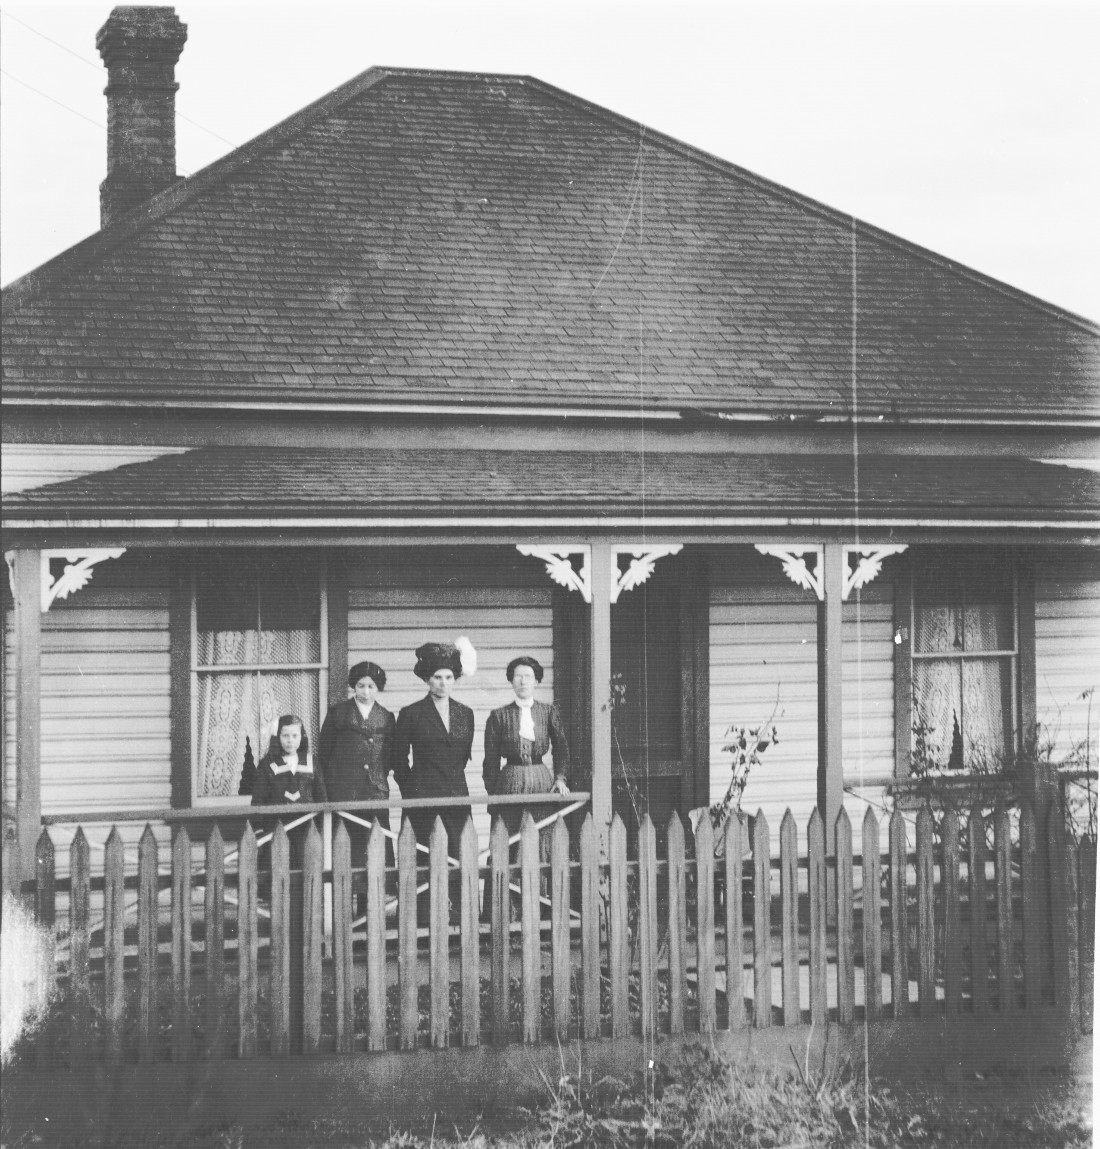 Three women and possibly Helen on porch - Second from right appears to be Kathleen Southwell